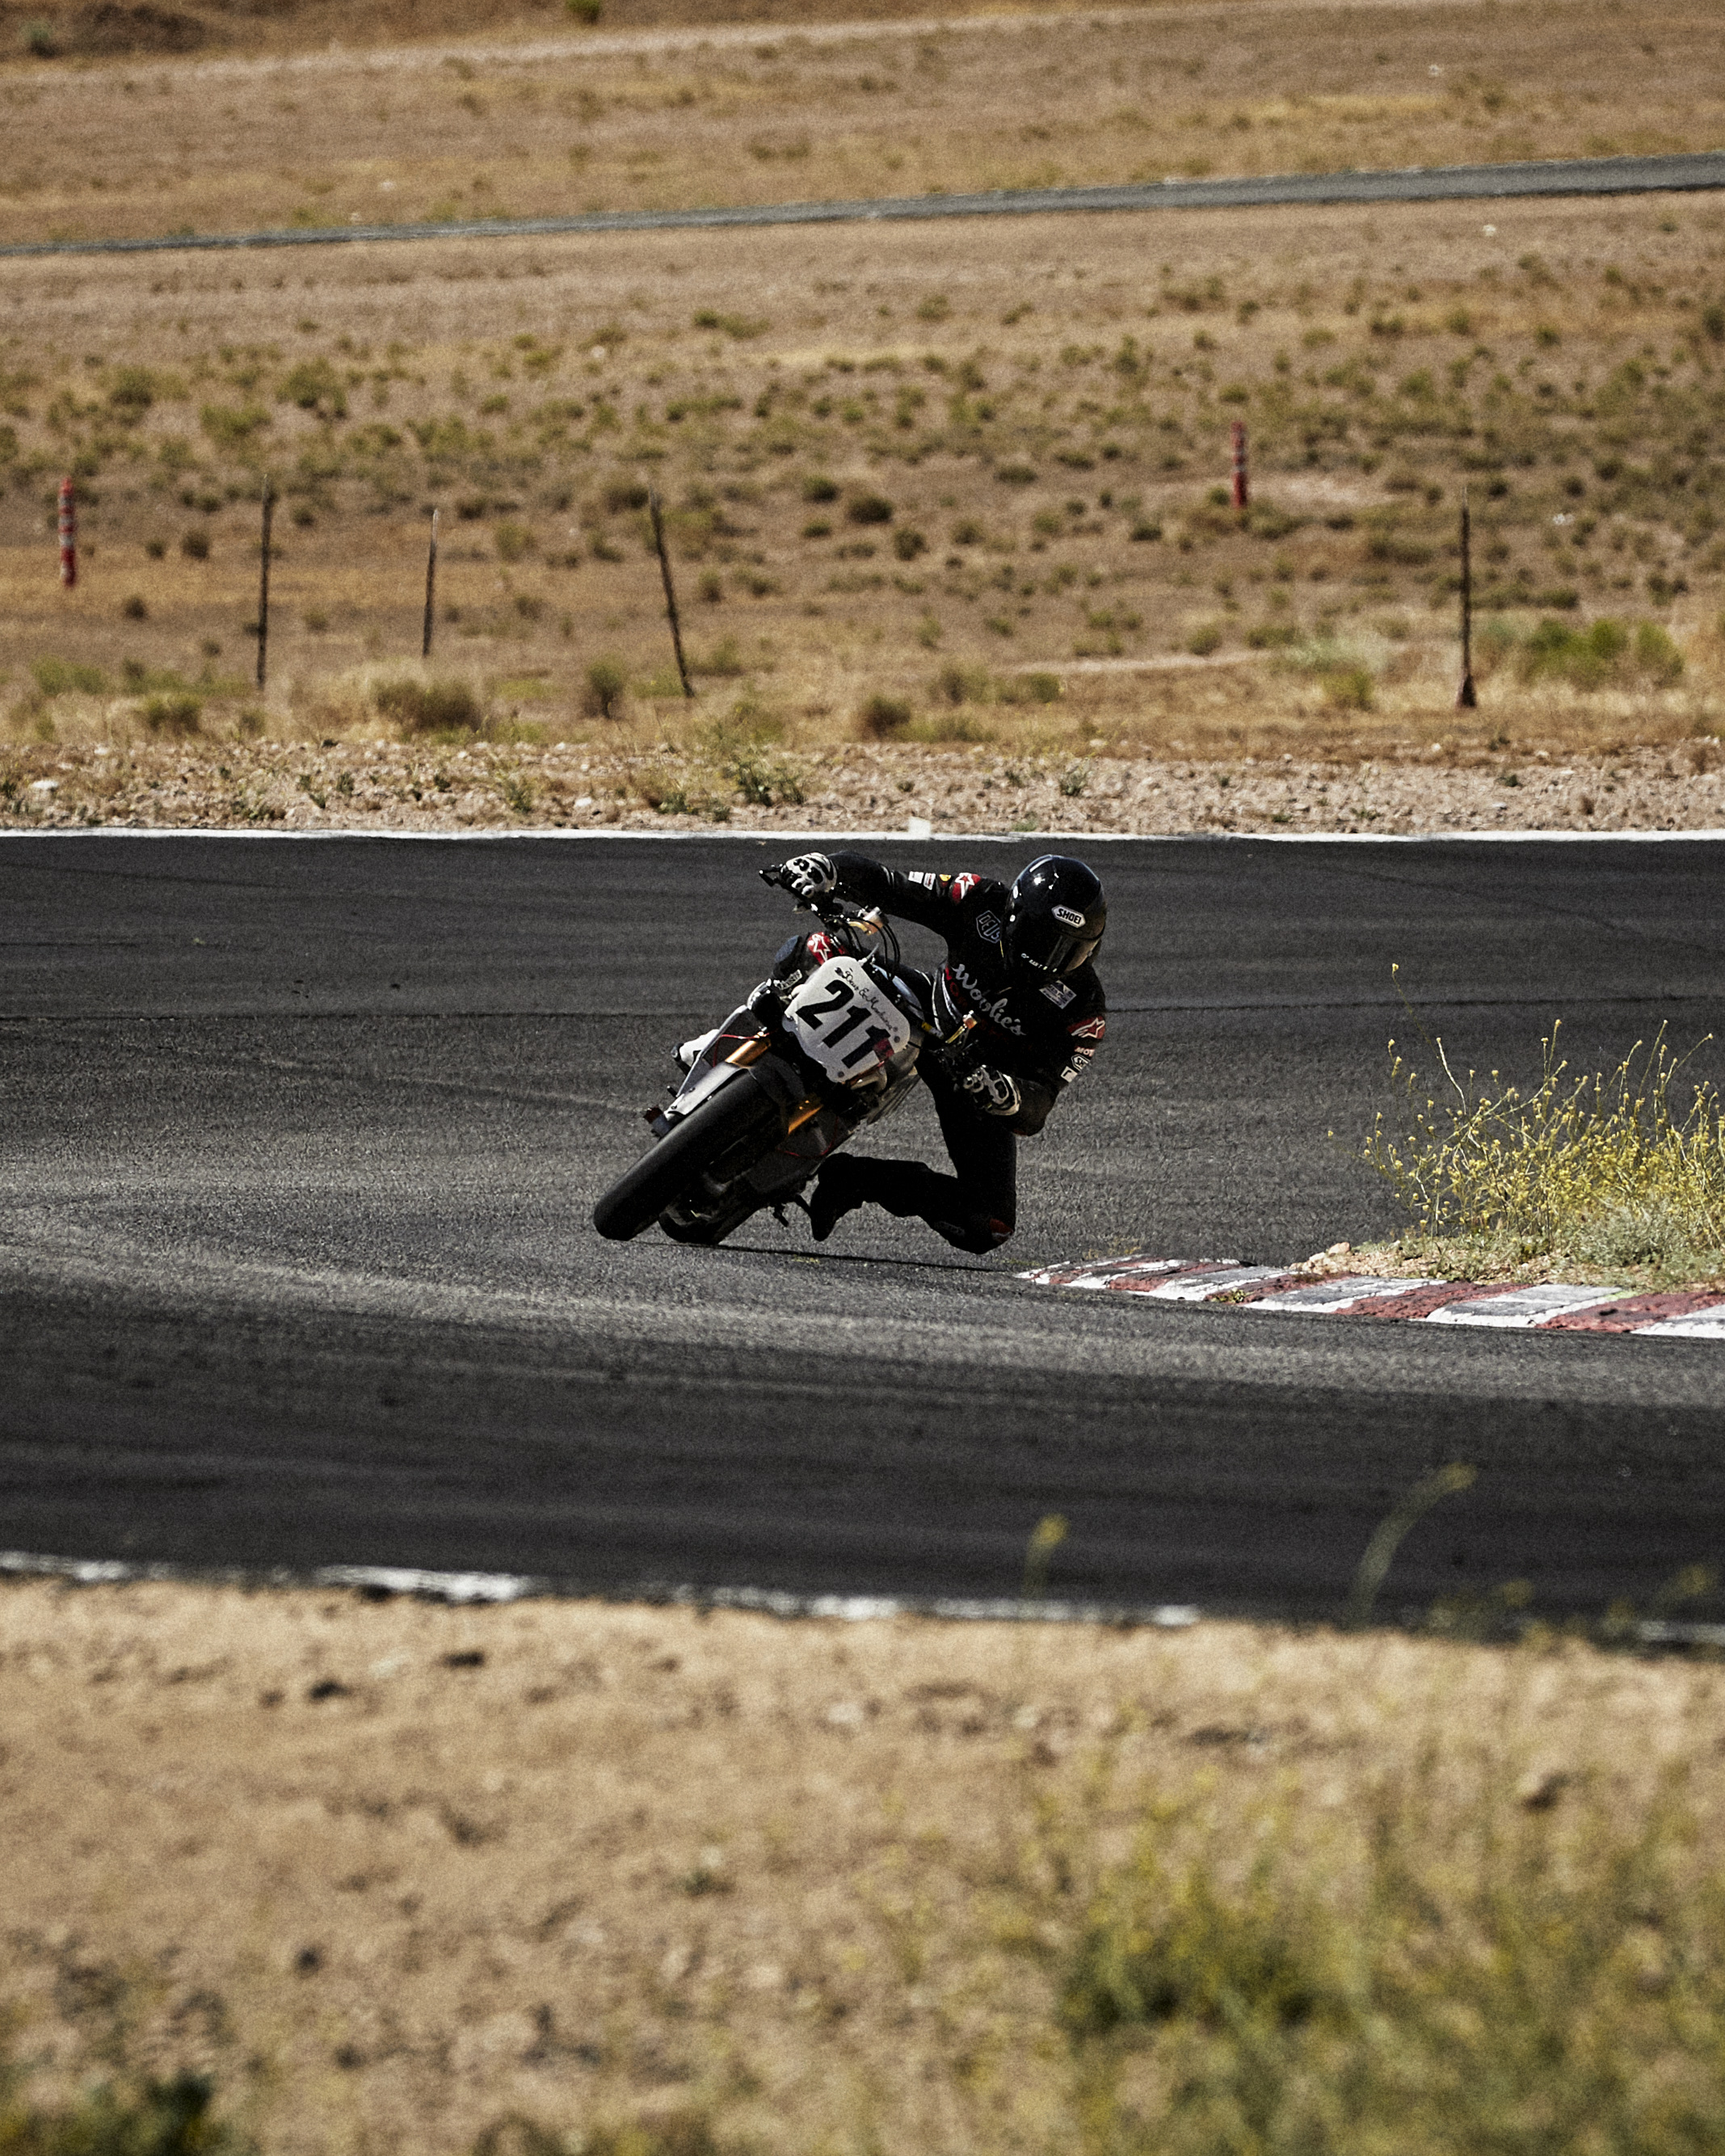 Willow_Springs_0662.jpg